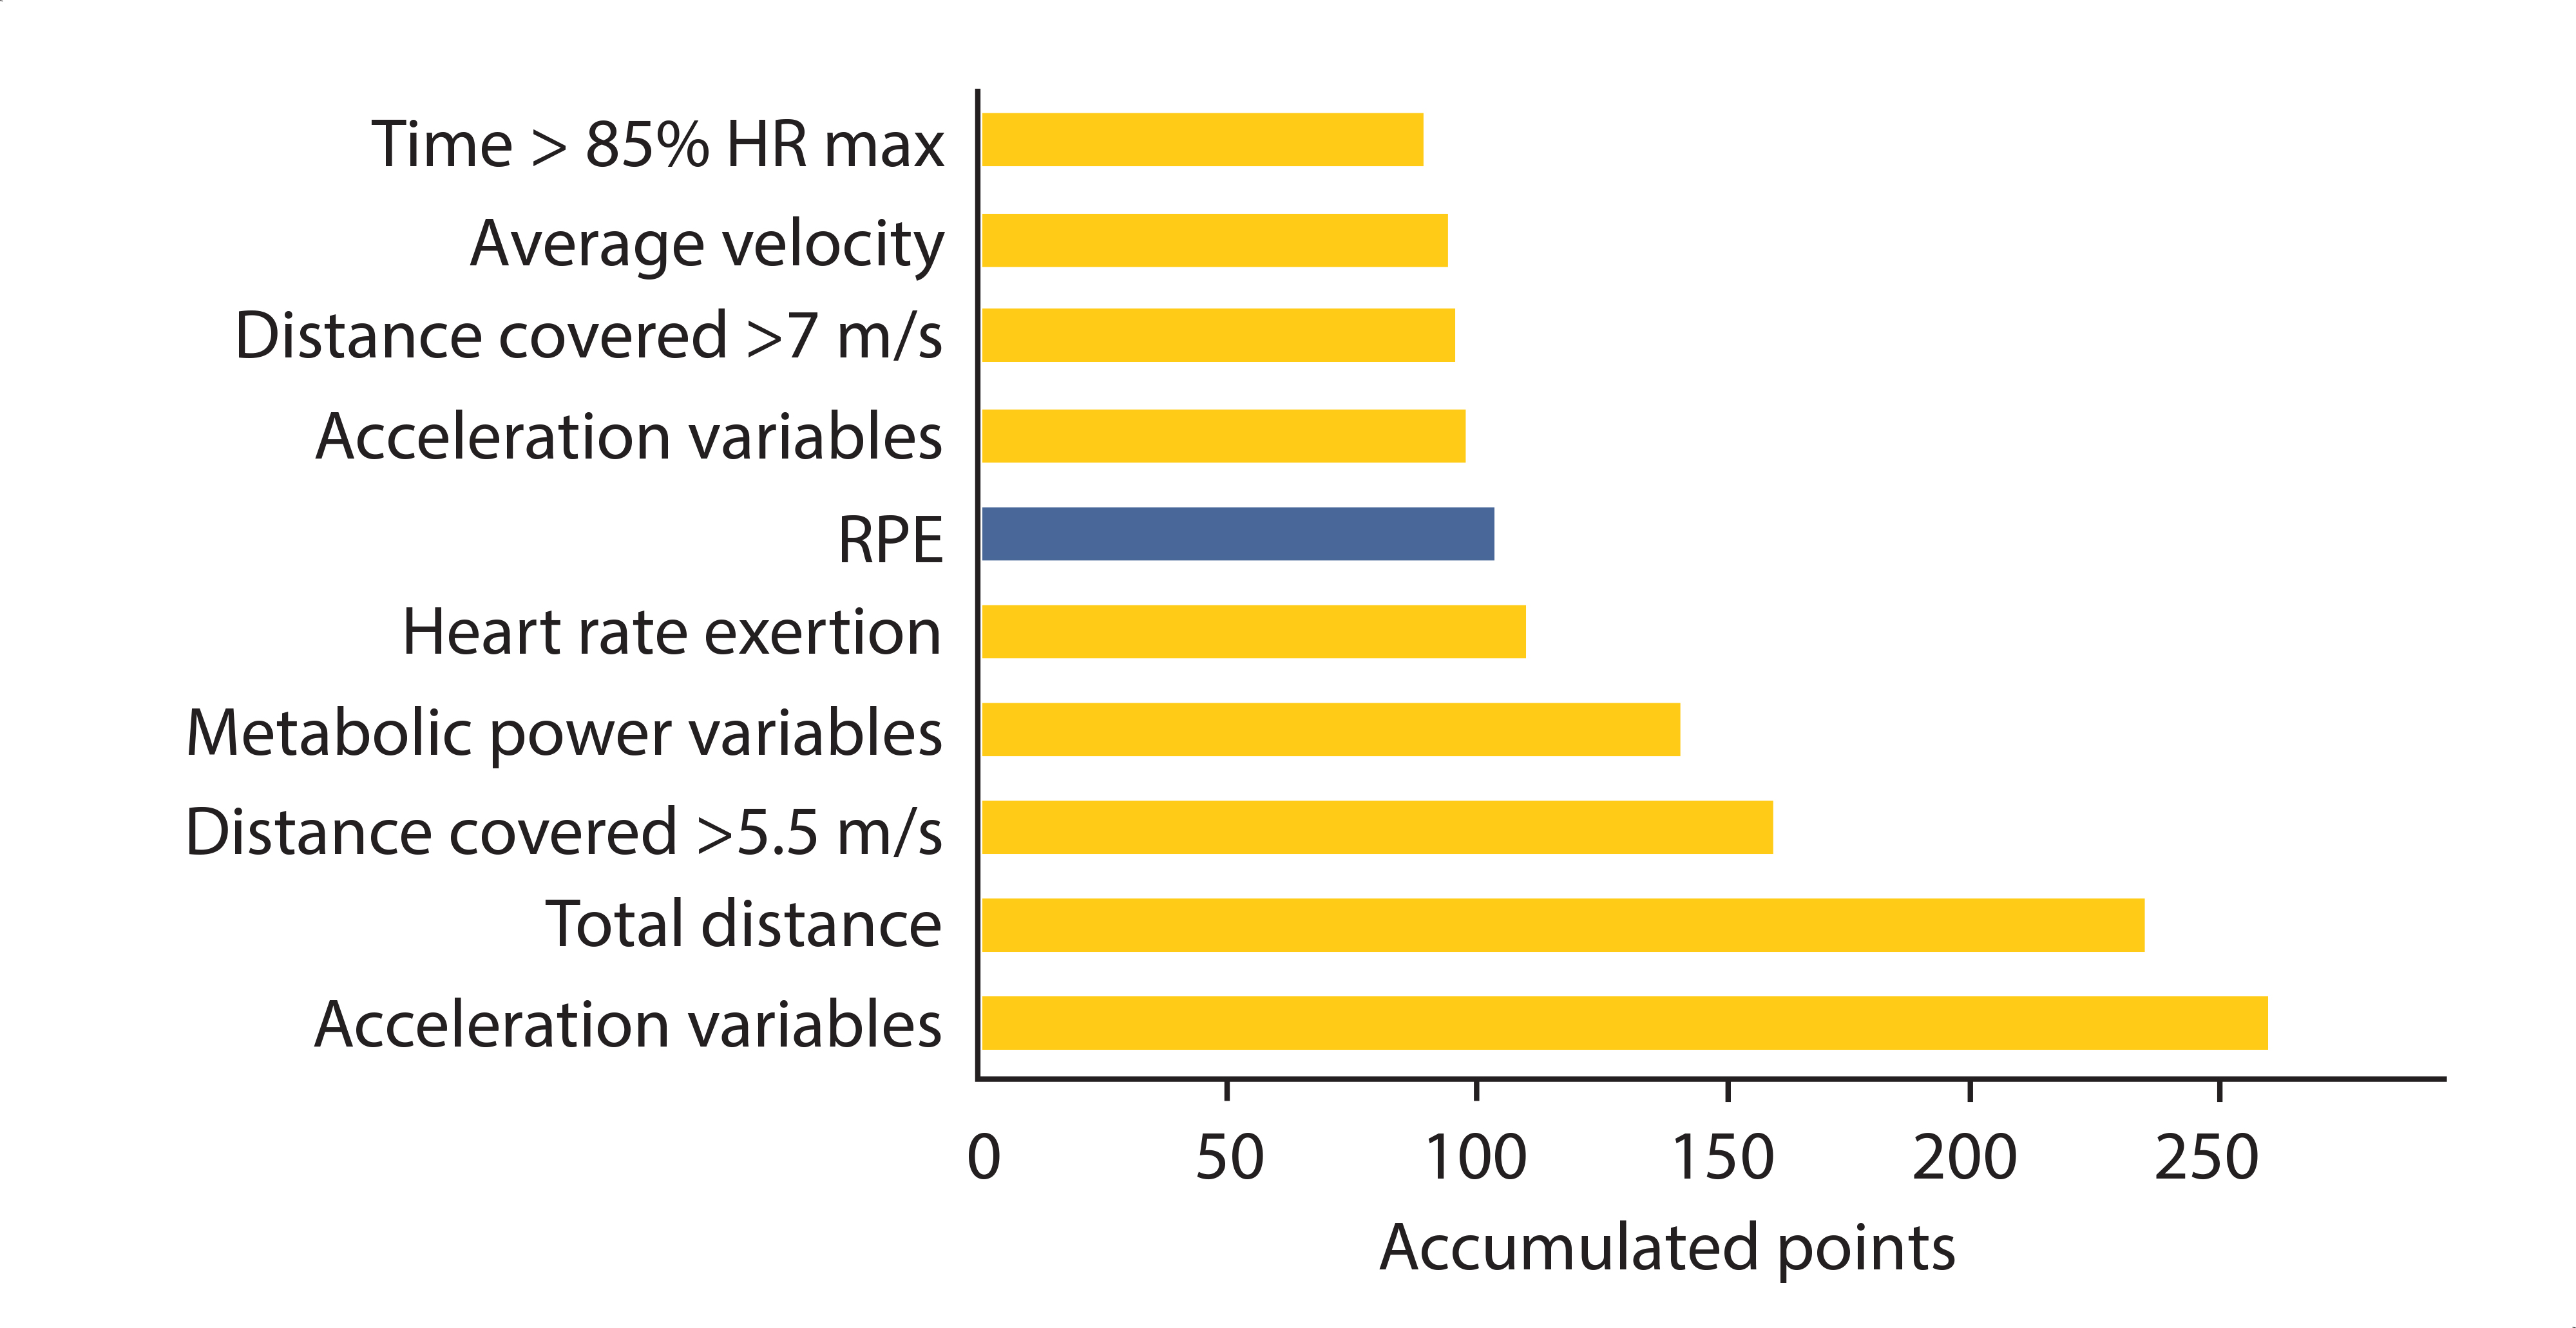 Figure 1. The ten most frequently used variables for quantifying load during training (Akenhead & Nassis, 2016).